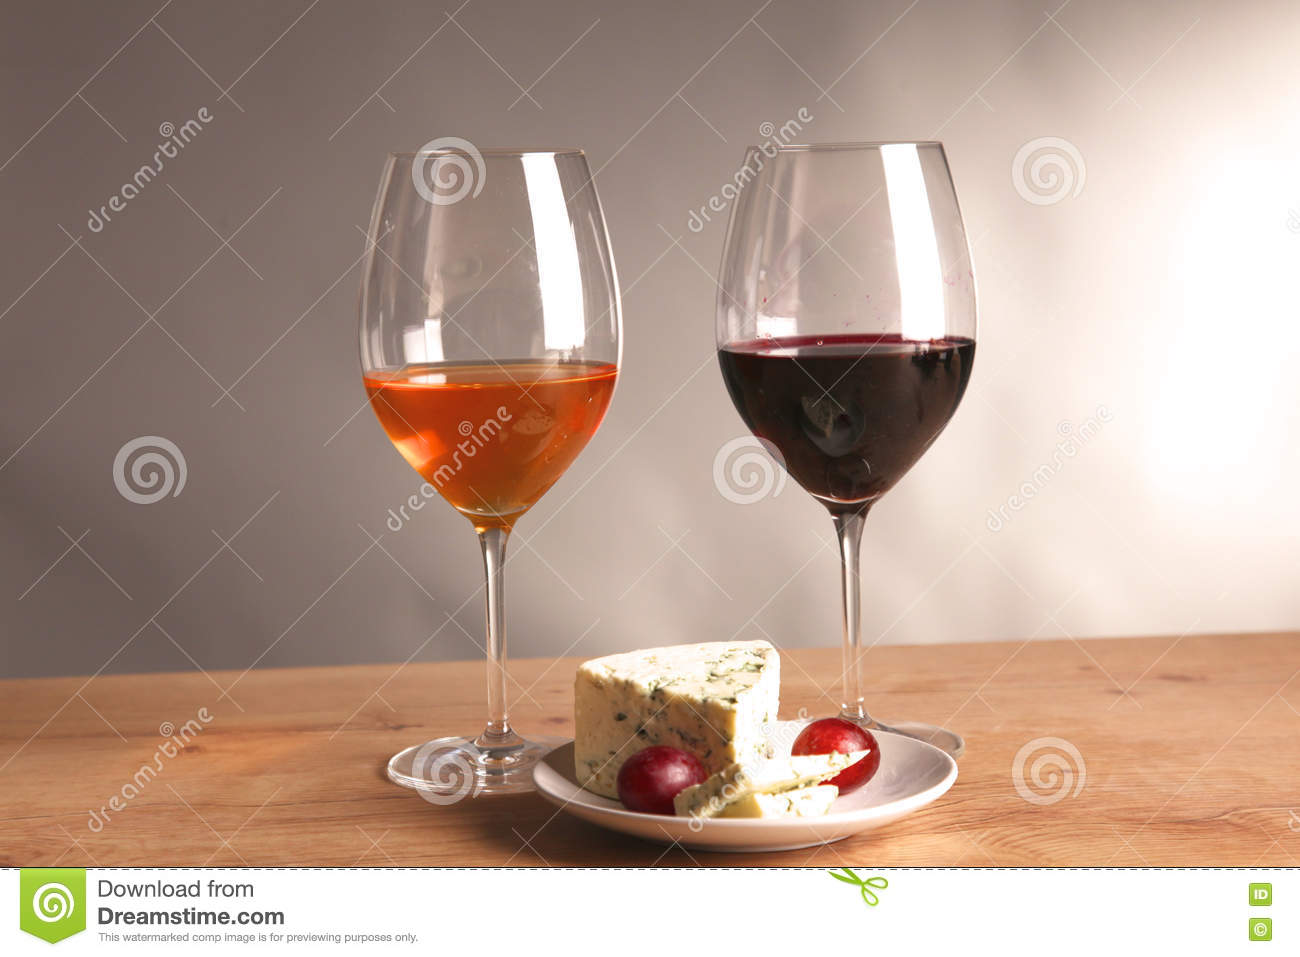 wine bottle and wine glass on a glass table stock photo